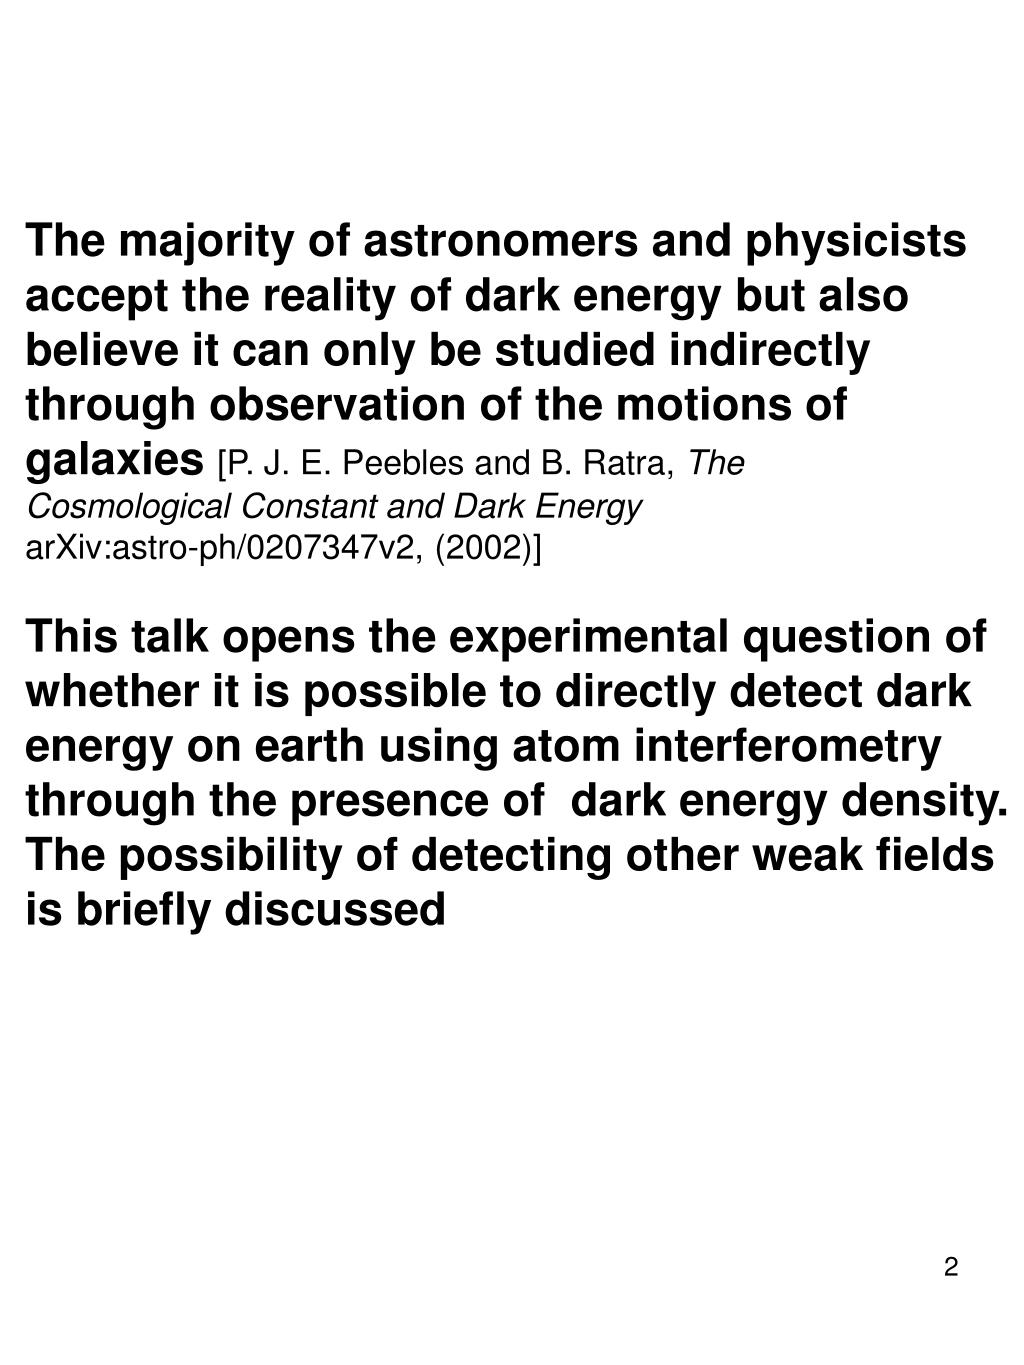 The majority of astronomers and physicists